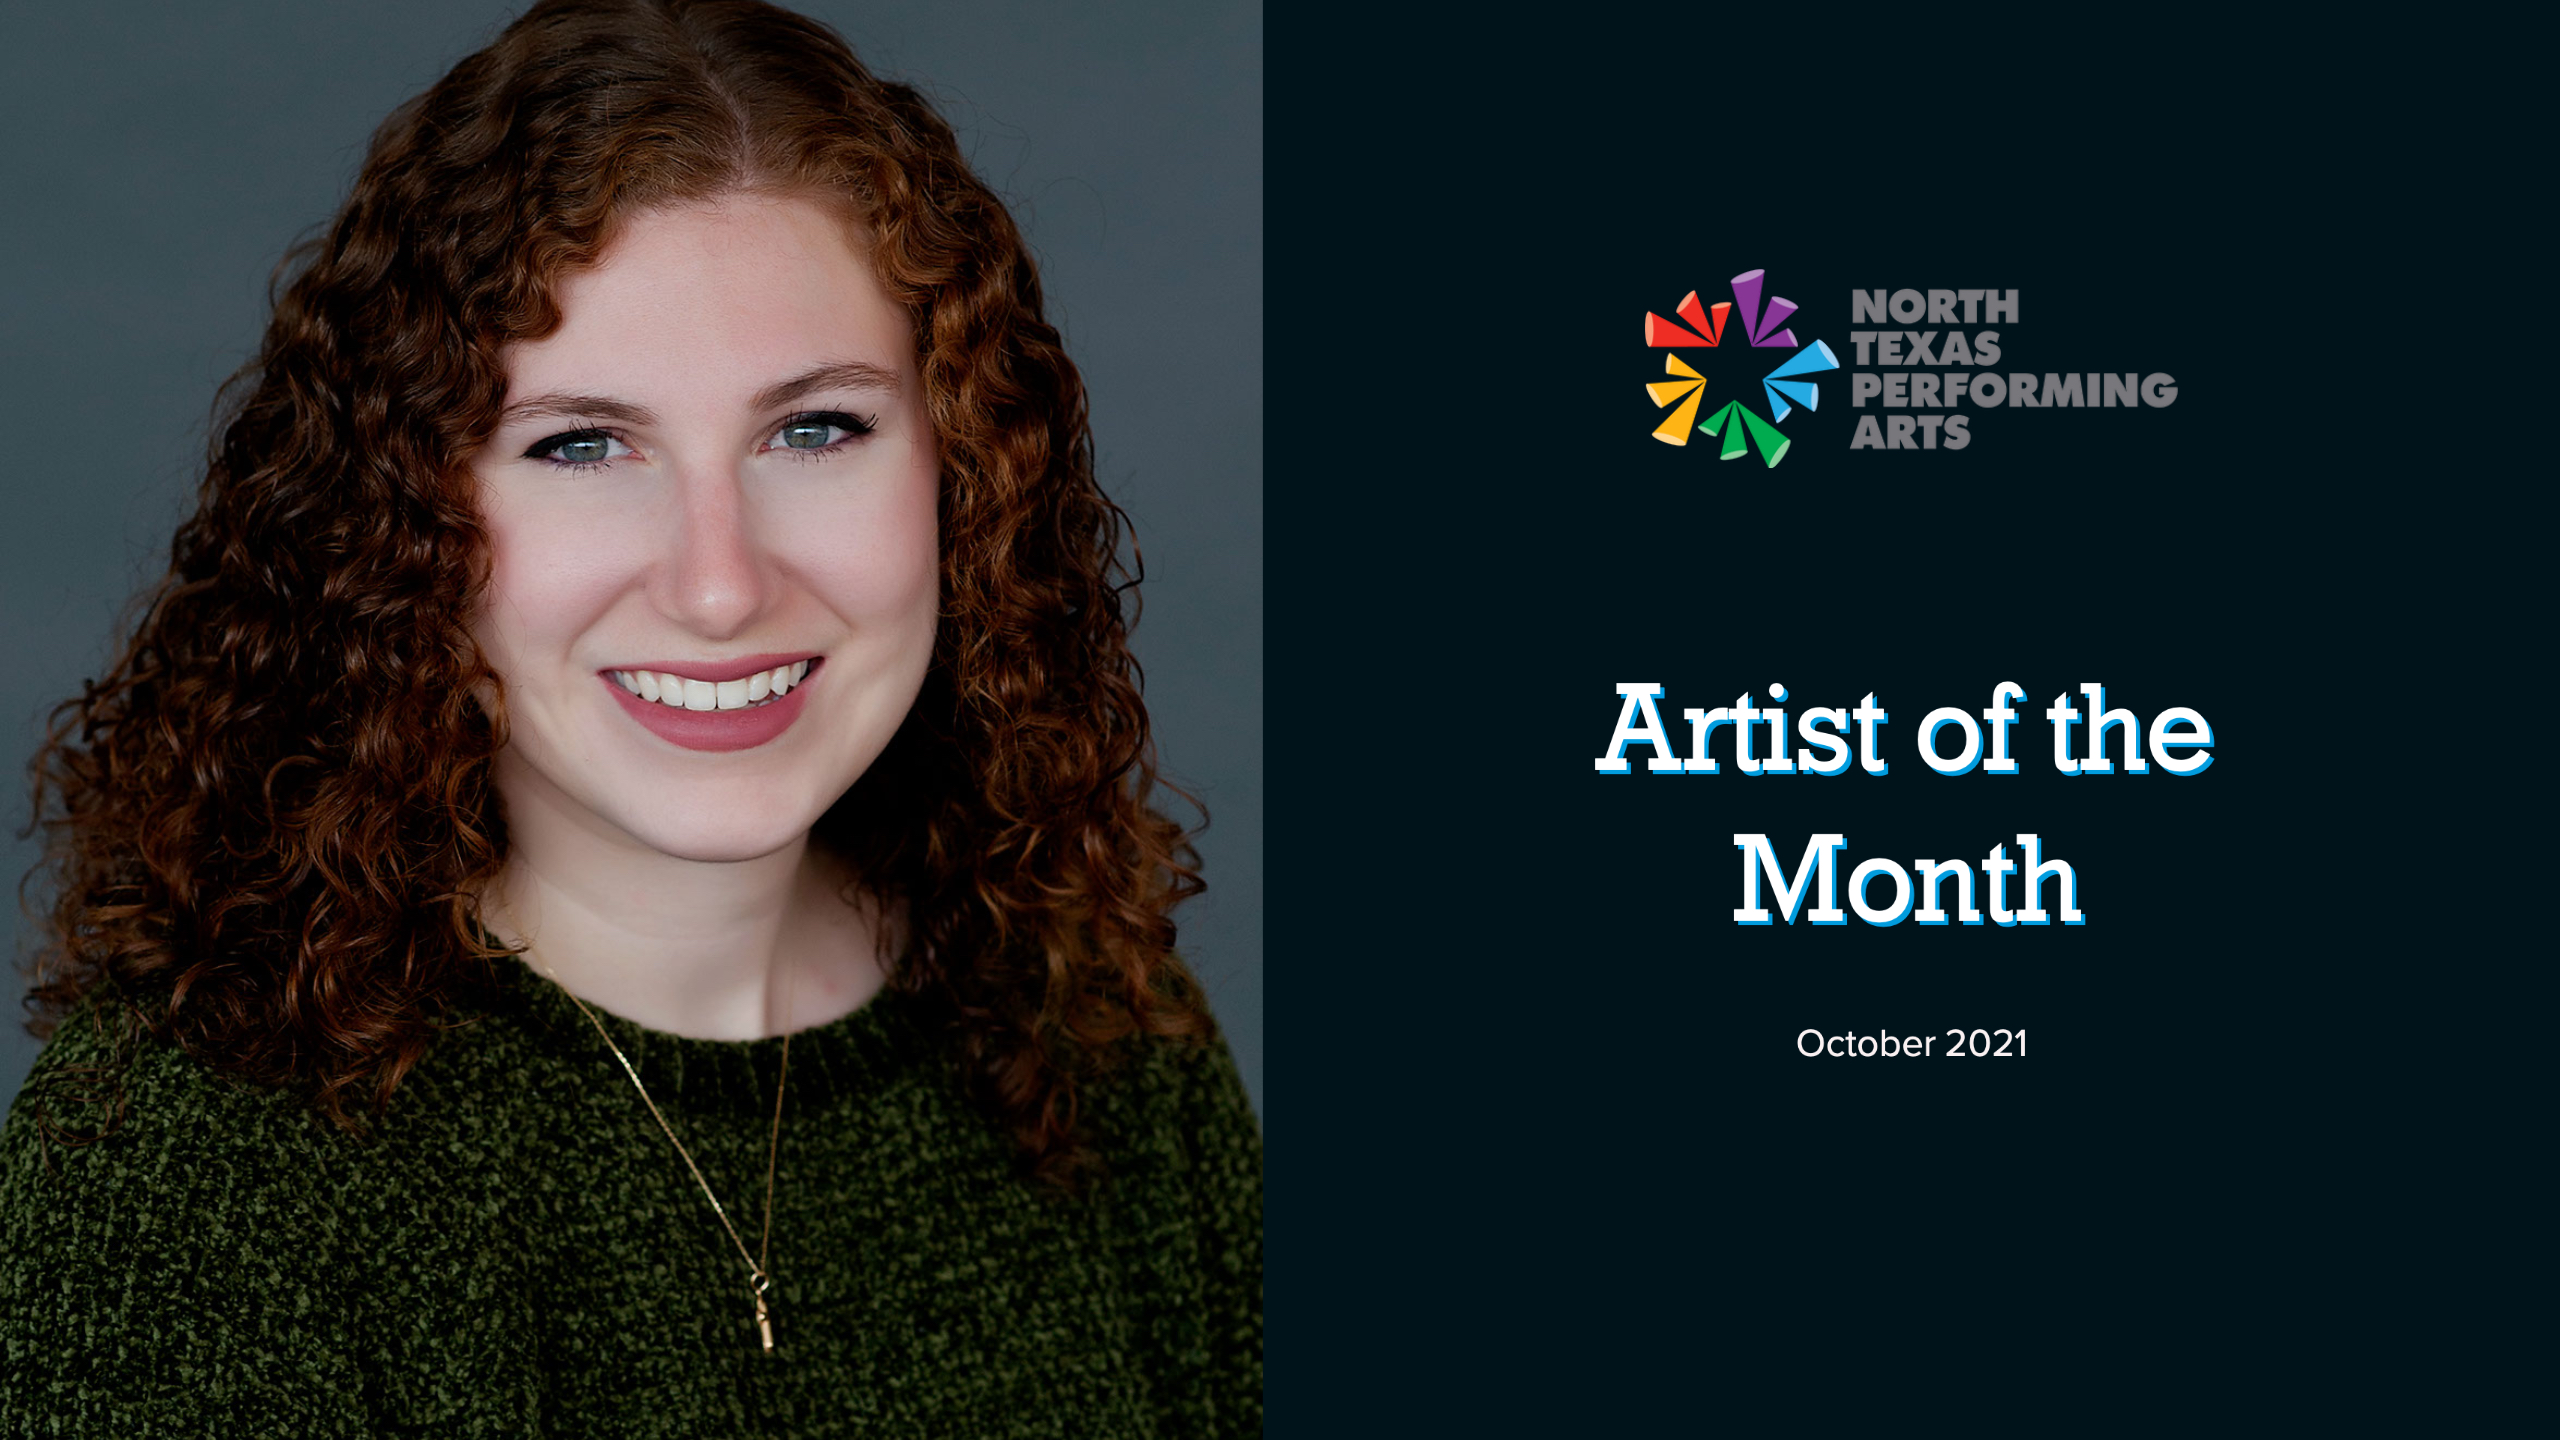 NTPA Announces October 2021 Artist of the Month as Kally Duncan